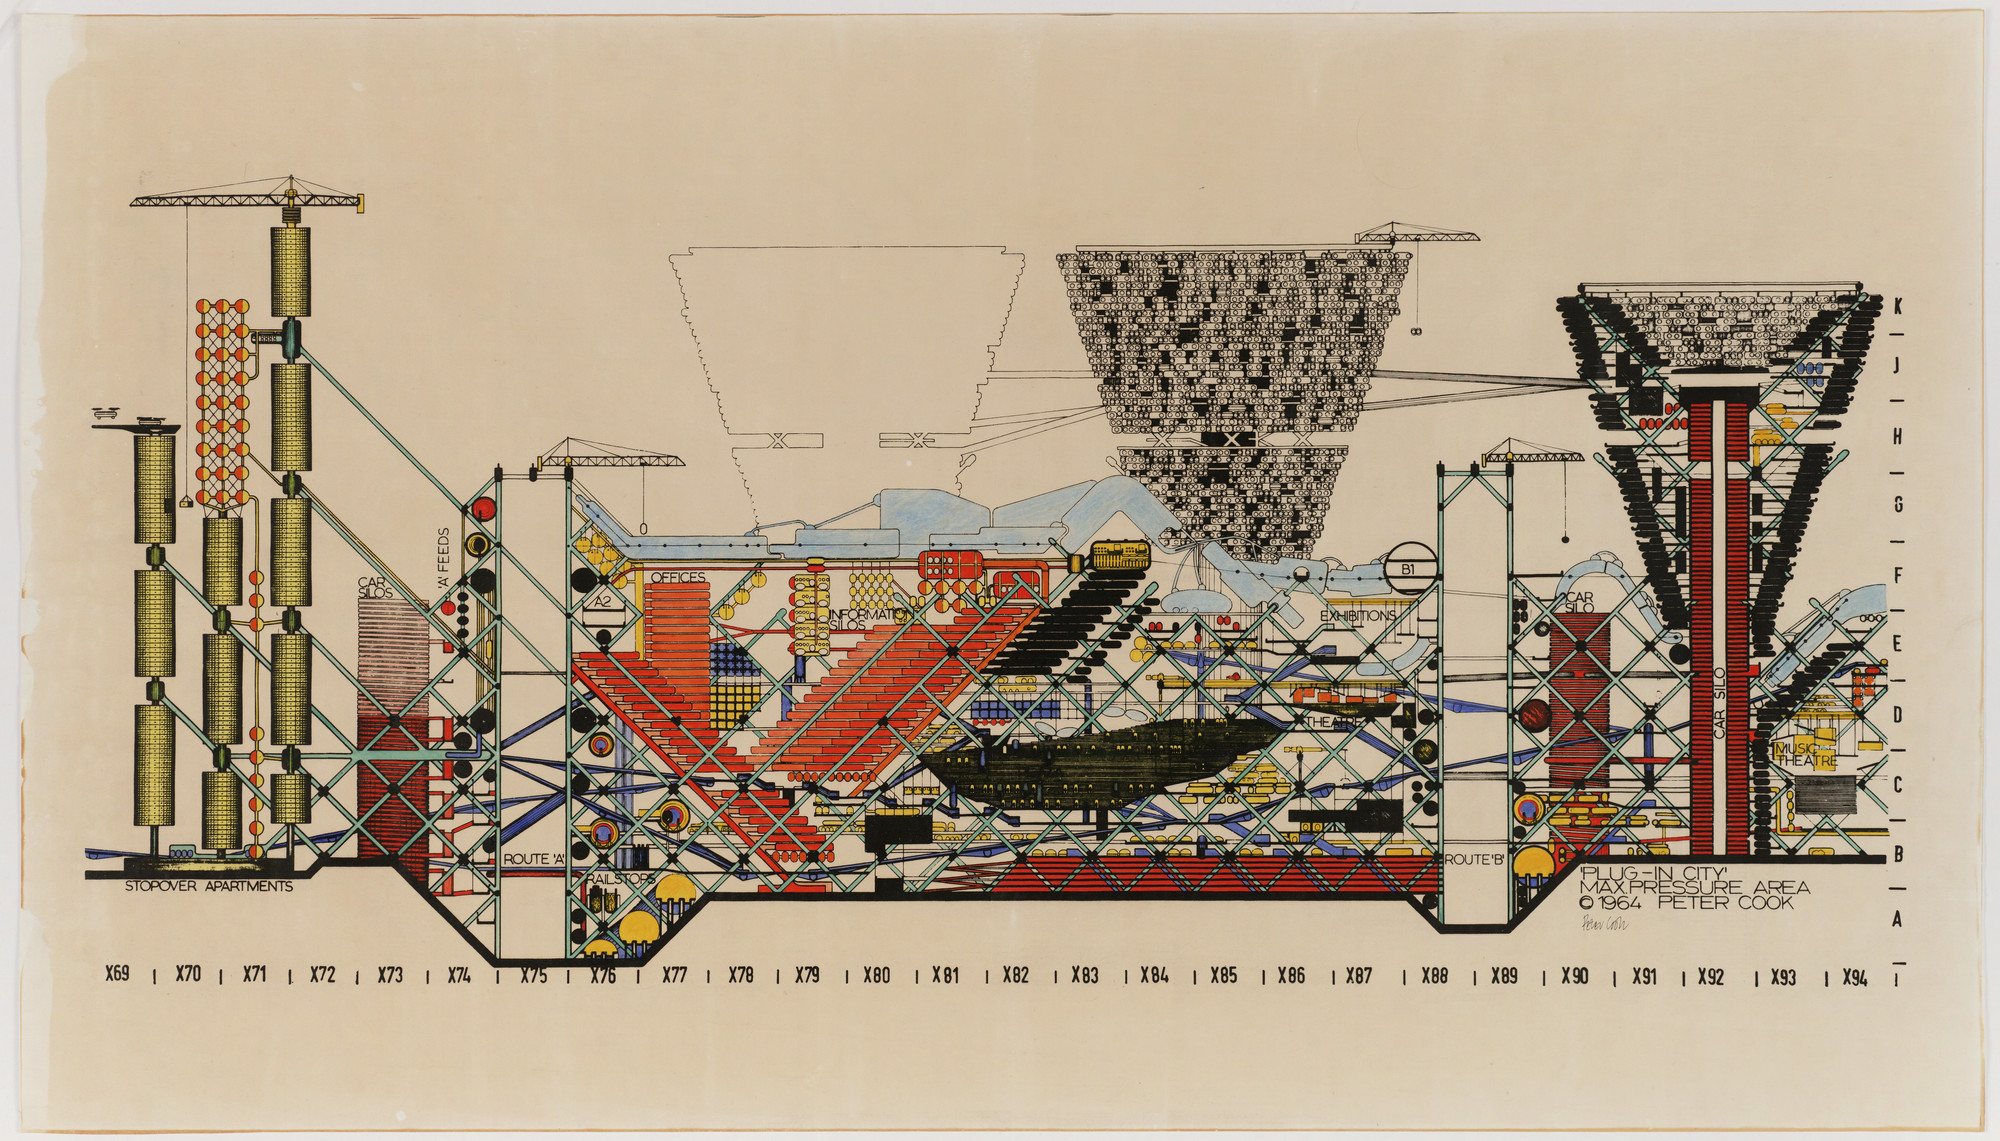 Peter Cook. Plug-in City: Maximum Pressure Area, project (Section). 1964